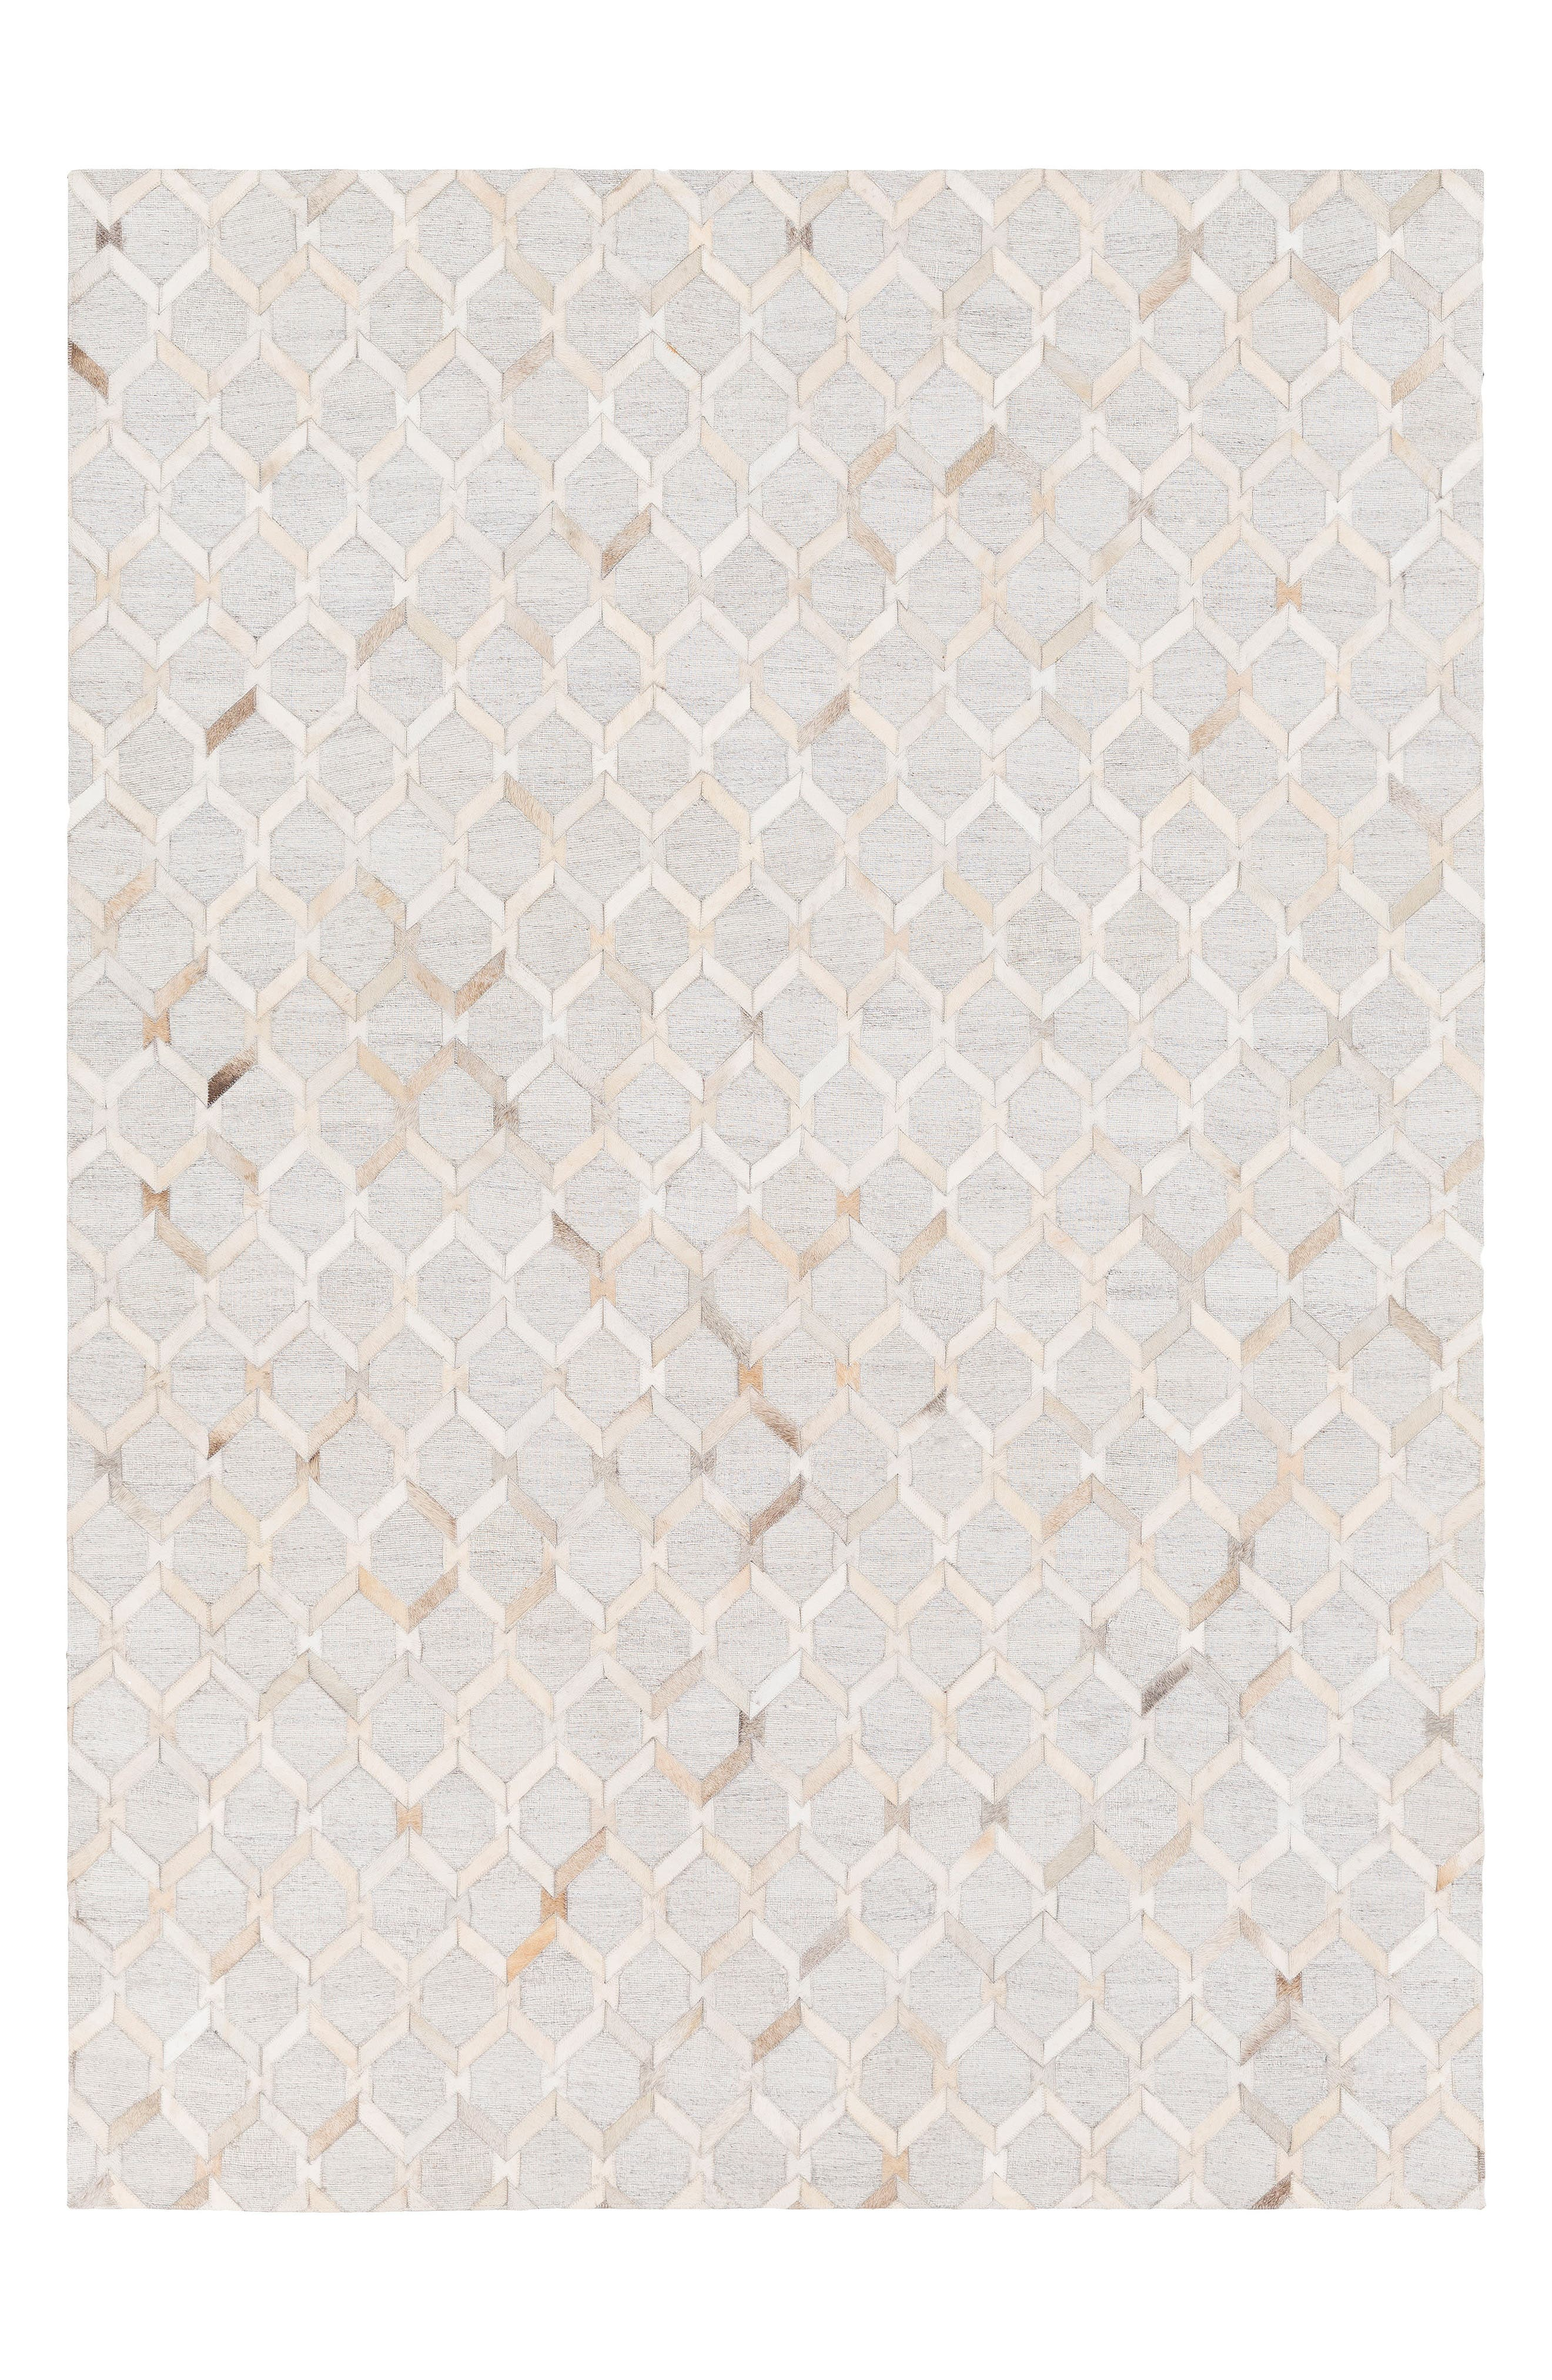 Medora Laura Hand Stitched Rug,                             Main thumbnail 1, color,                             900